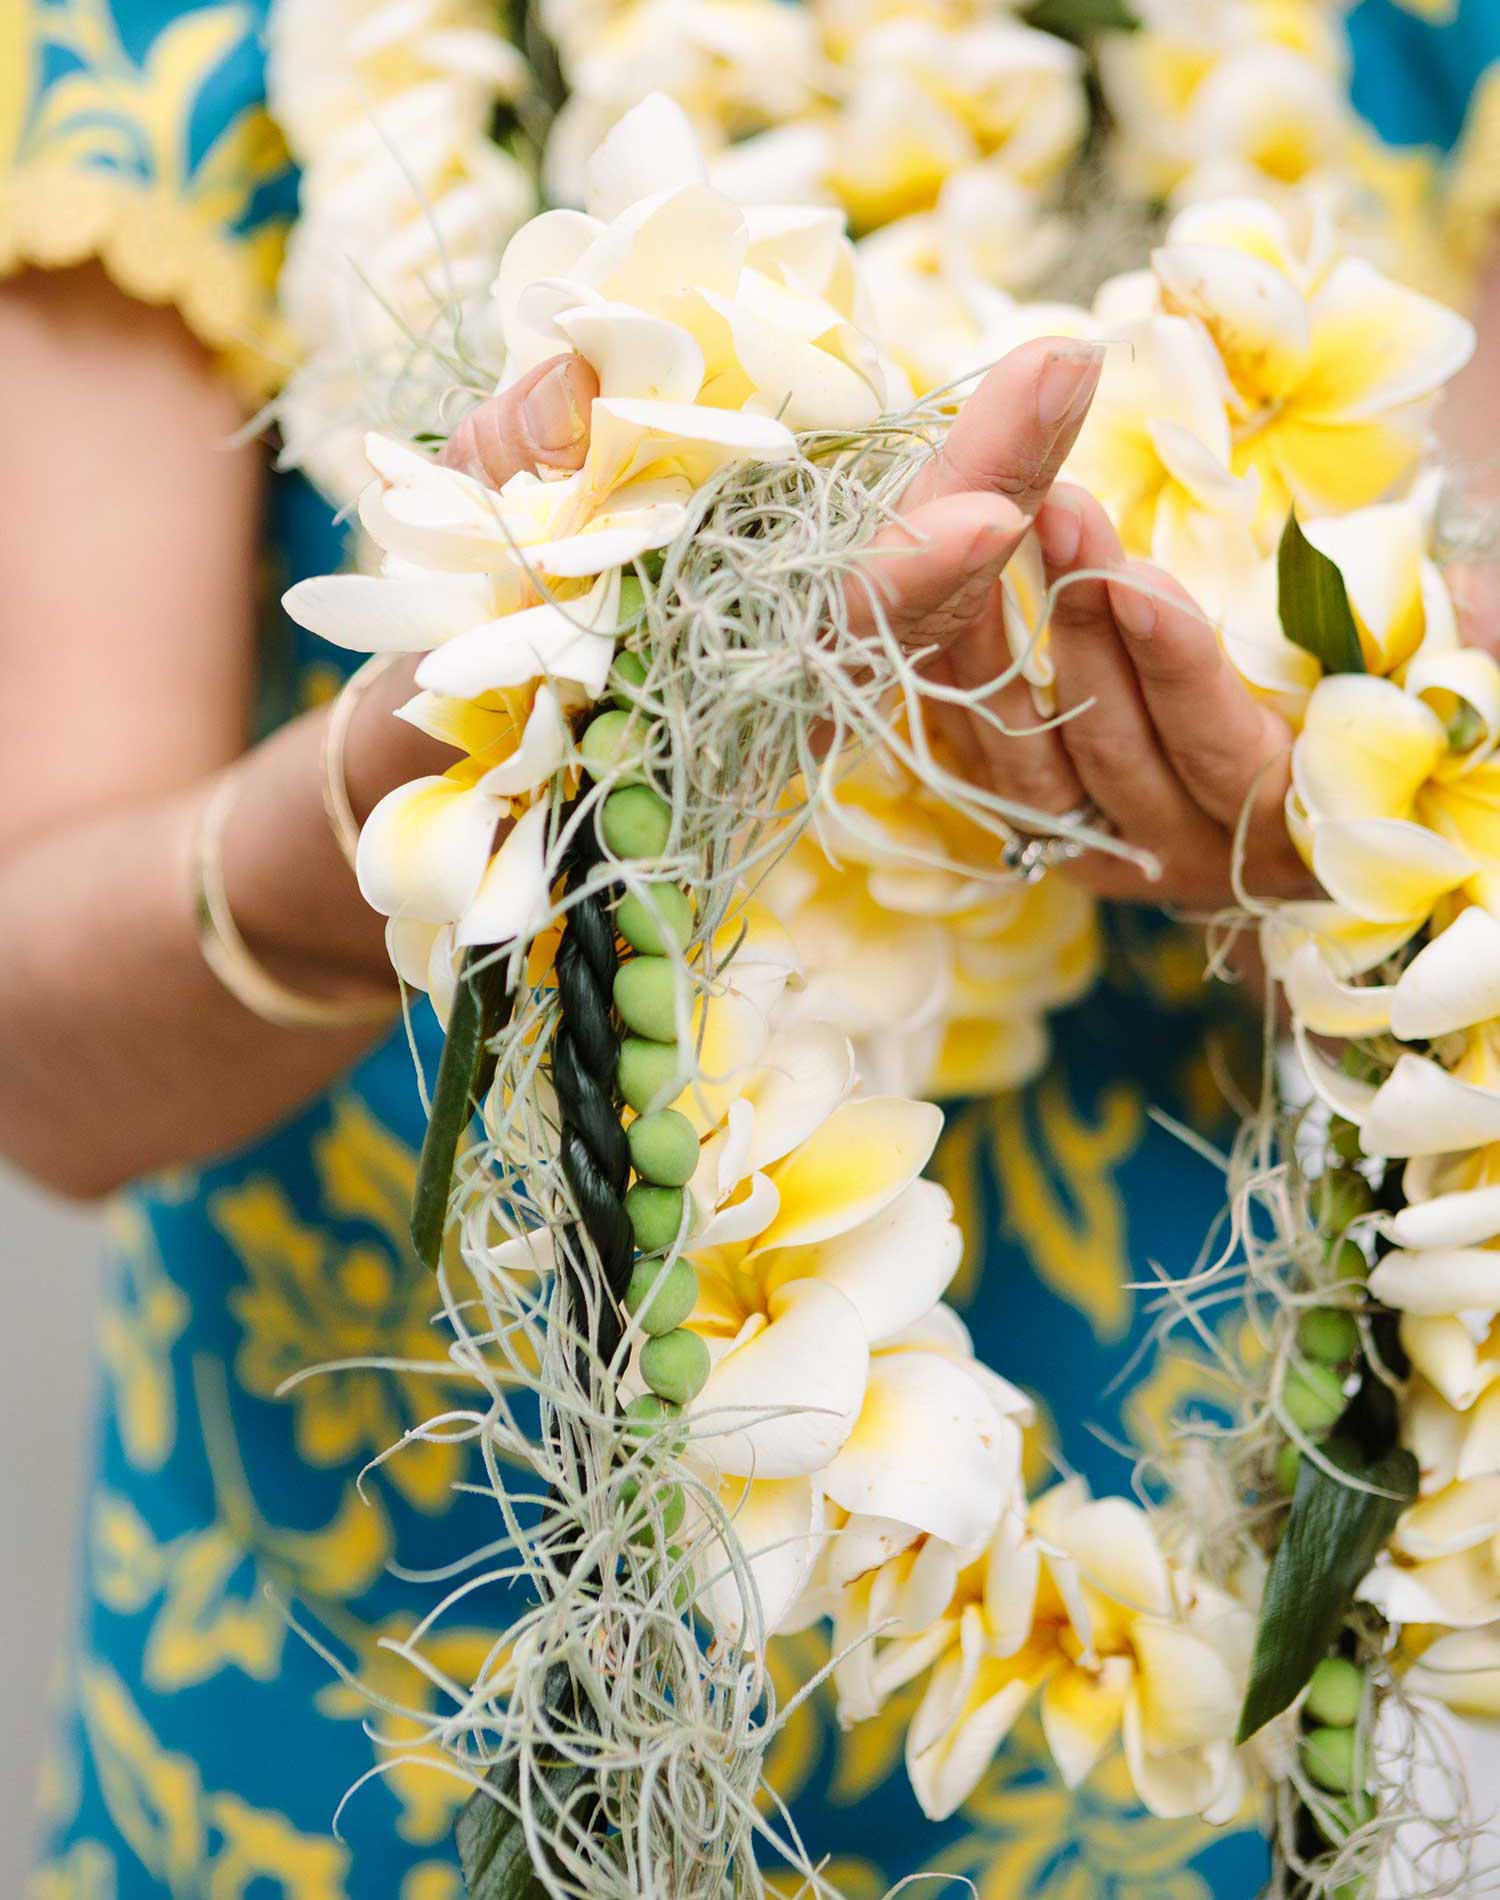 Plumeria lei intertwined with other leis